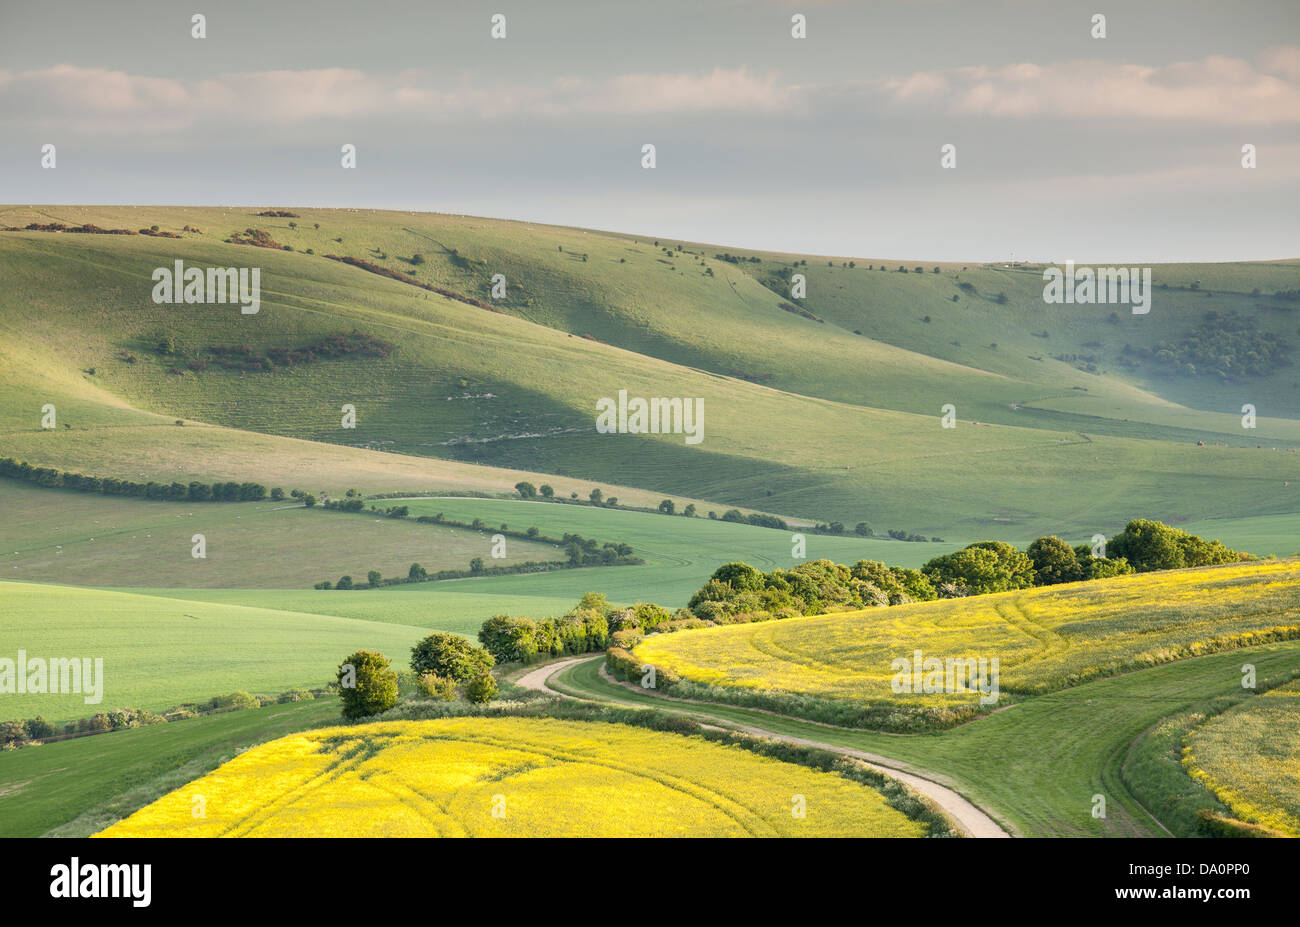 The undulating hills of the South Downs National Park - Stock Image